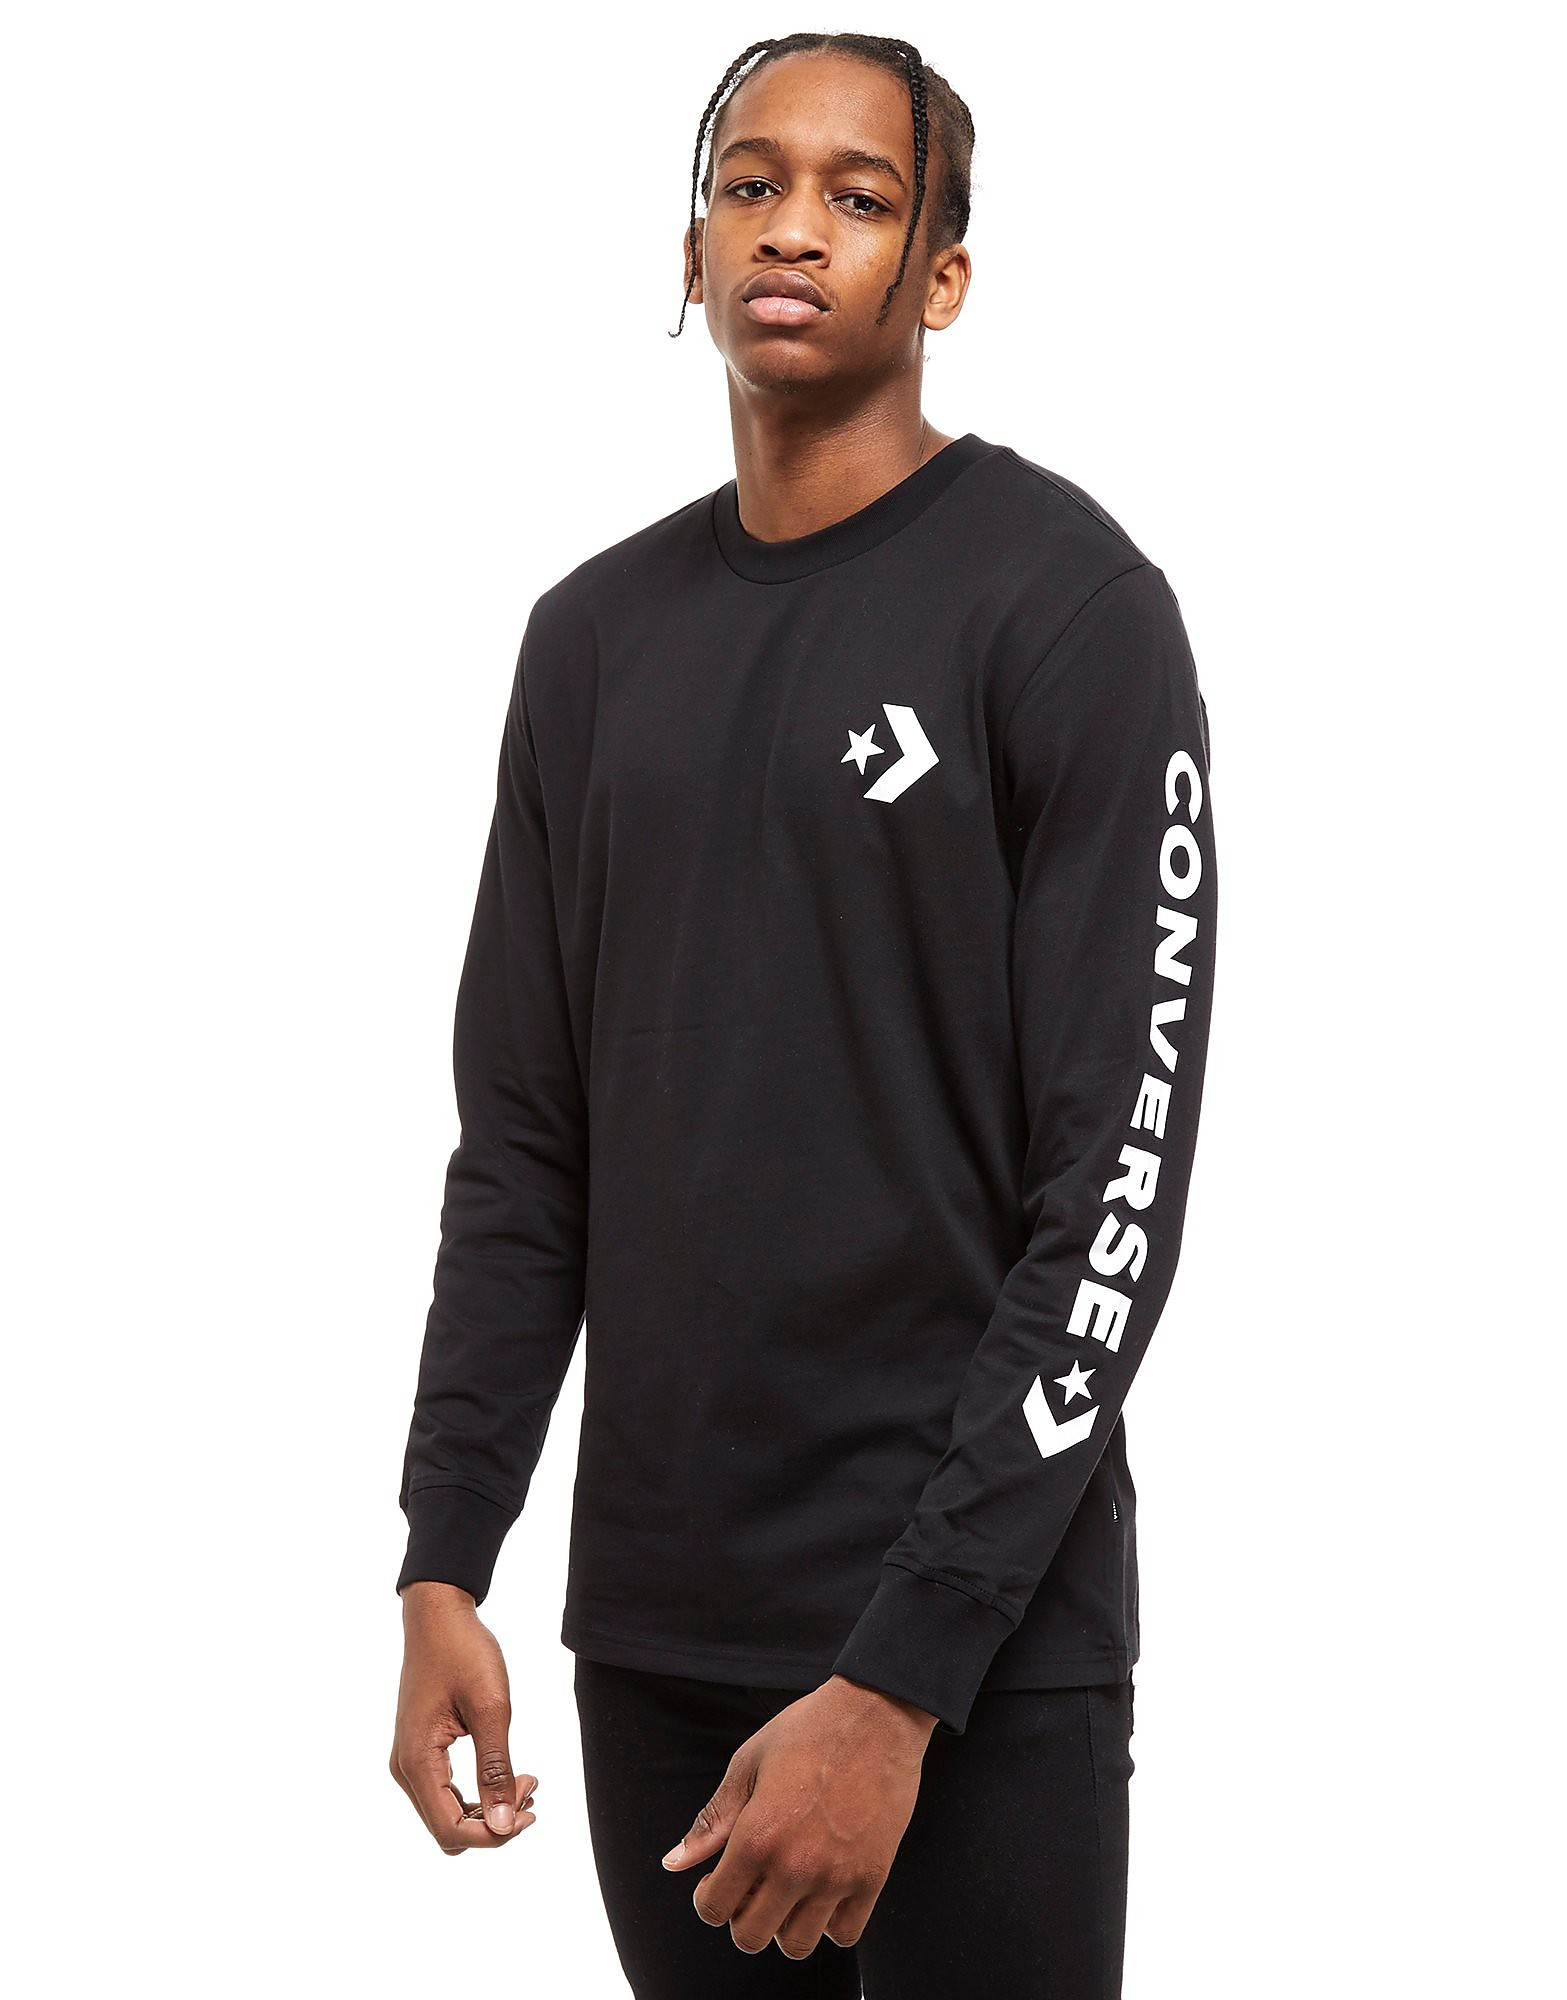 Converse Star Chevron Long Sleeve T-Shirt